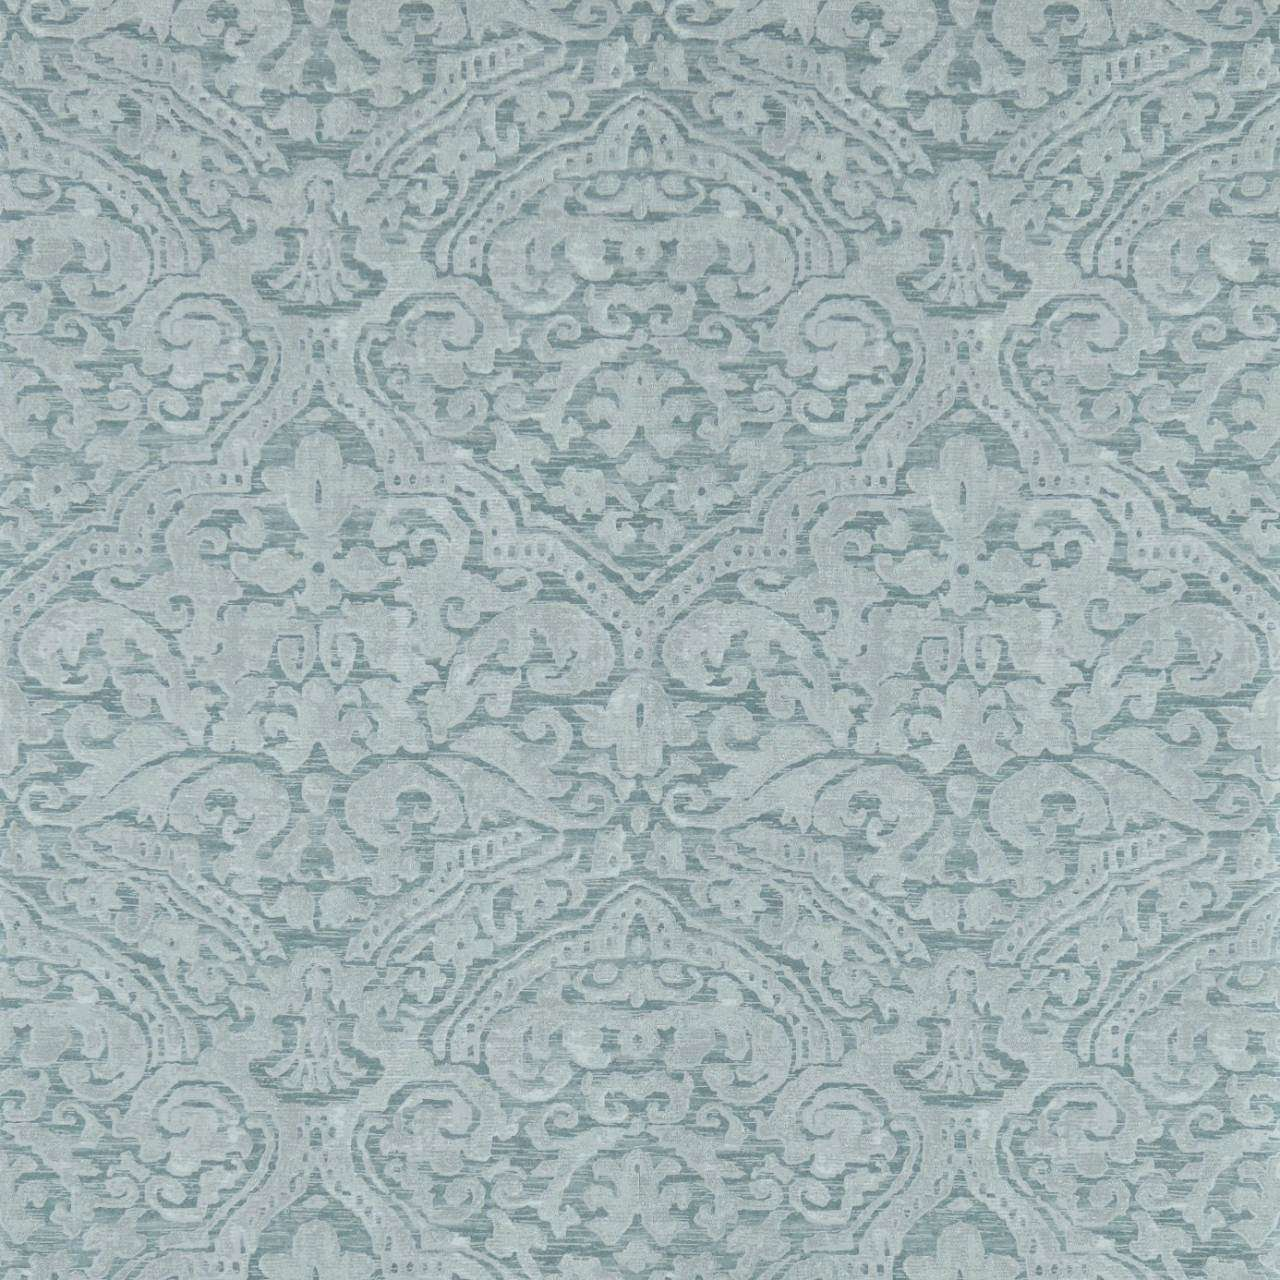 Renaissance Damask Stockholm Blue behang Zoffany Selected wallpapers by OOSTENDORP